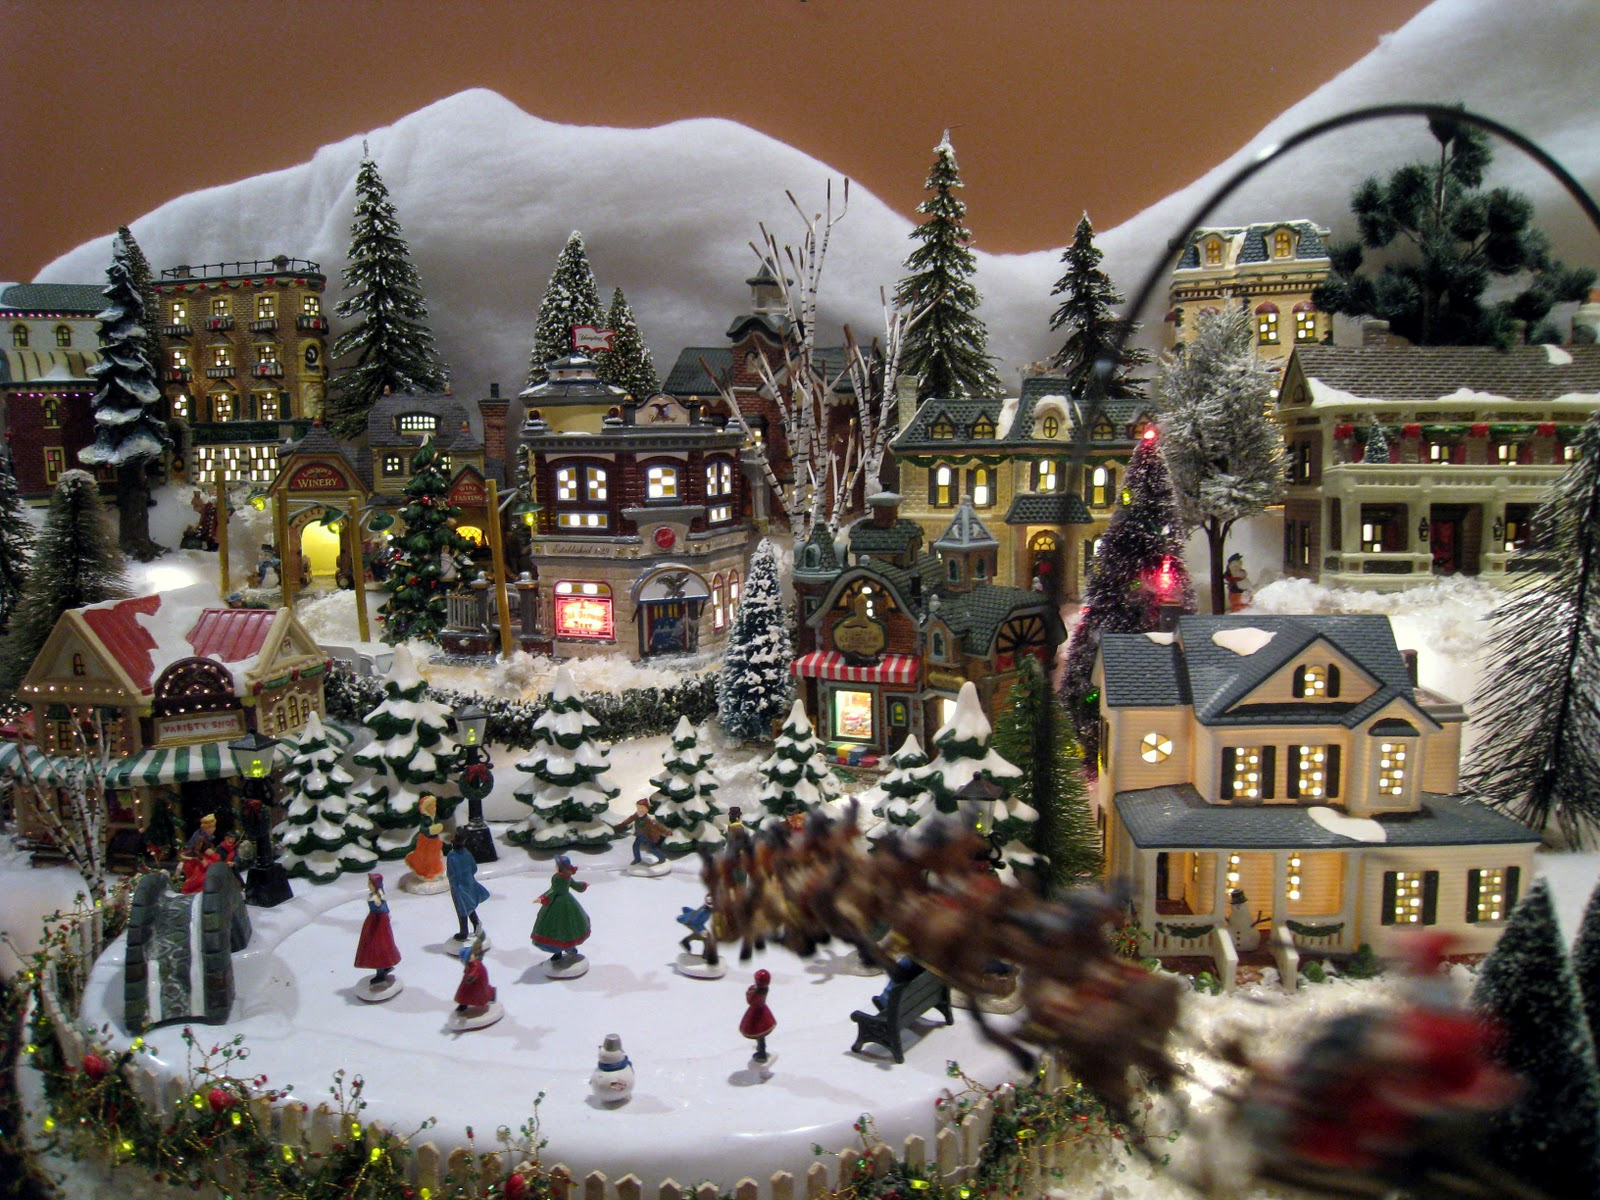 212 best Christmas Village ideas images on Pinterest | Christmas ...